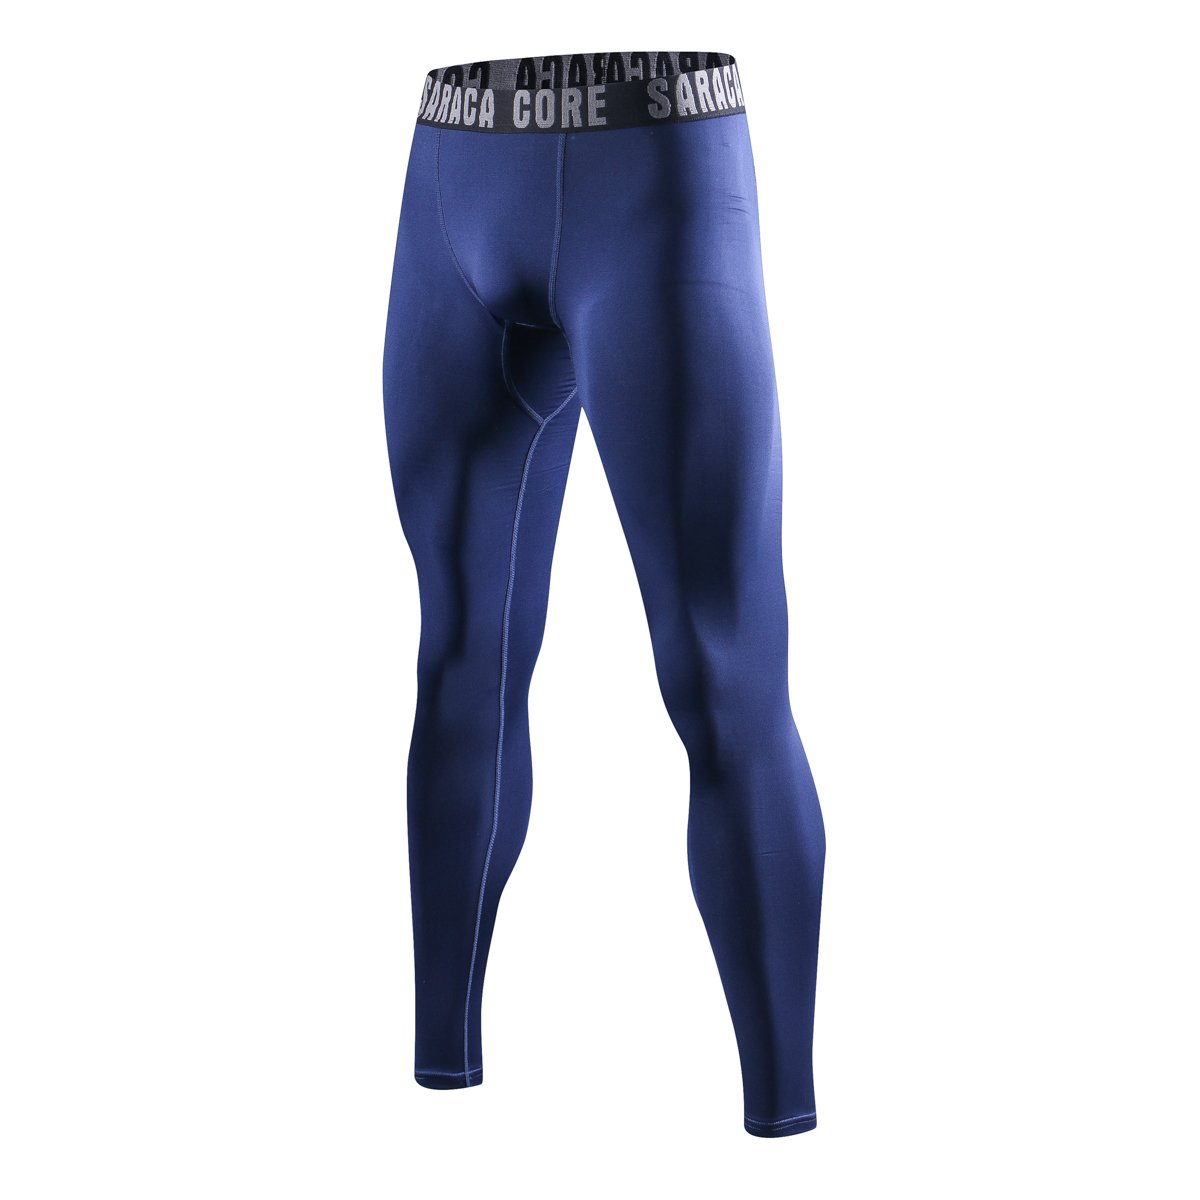 saraca core Men's Teenage Boys Compression Tight Cool Dry Sports Leggings Base Layer Pants